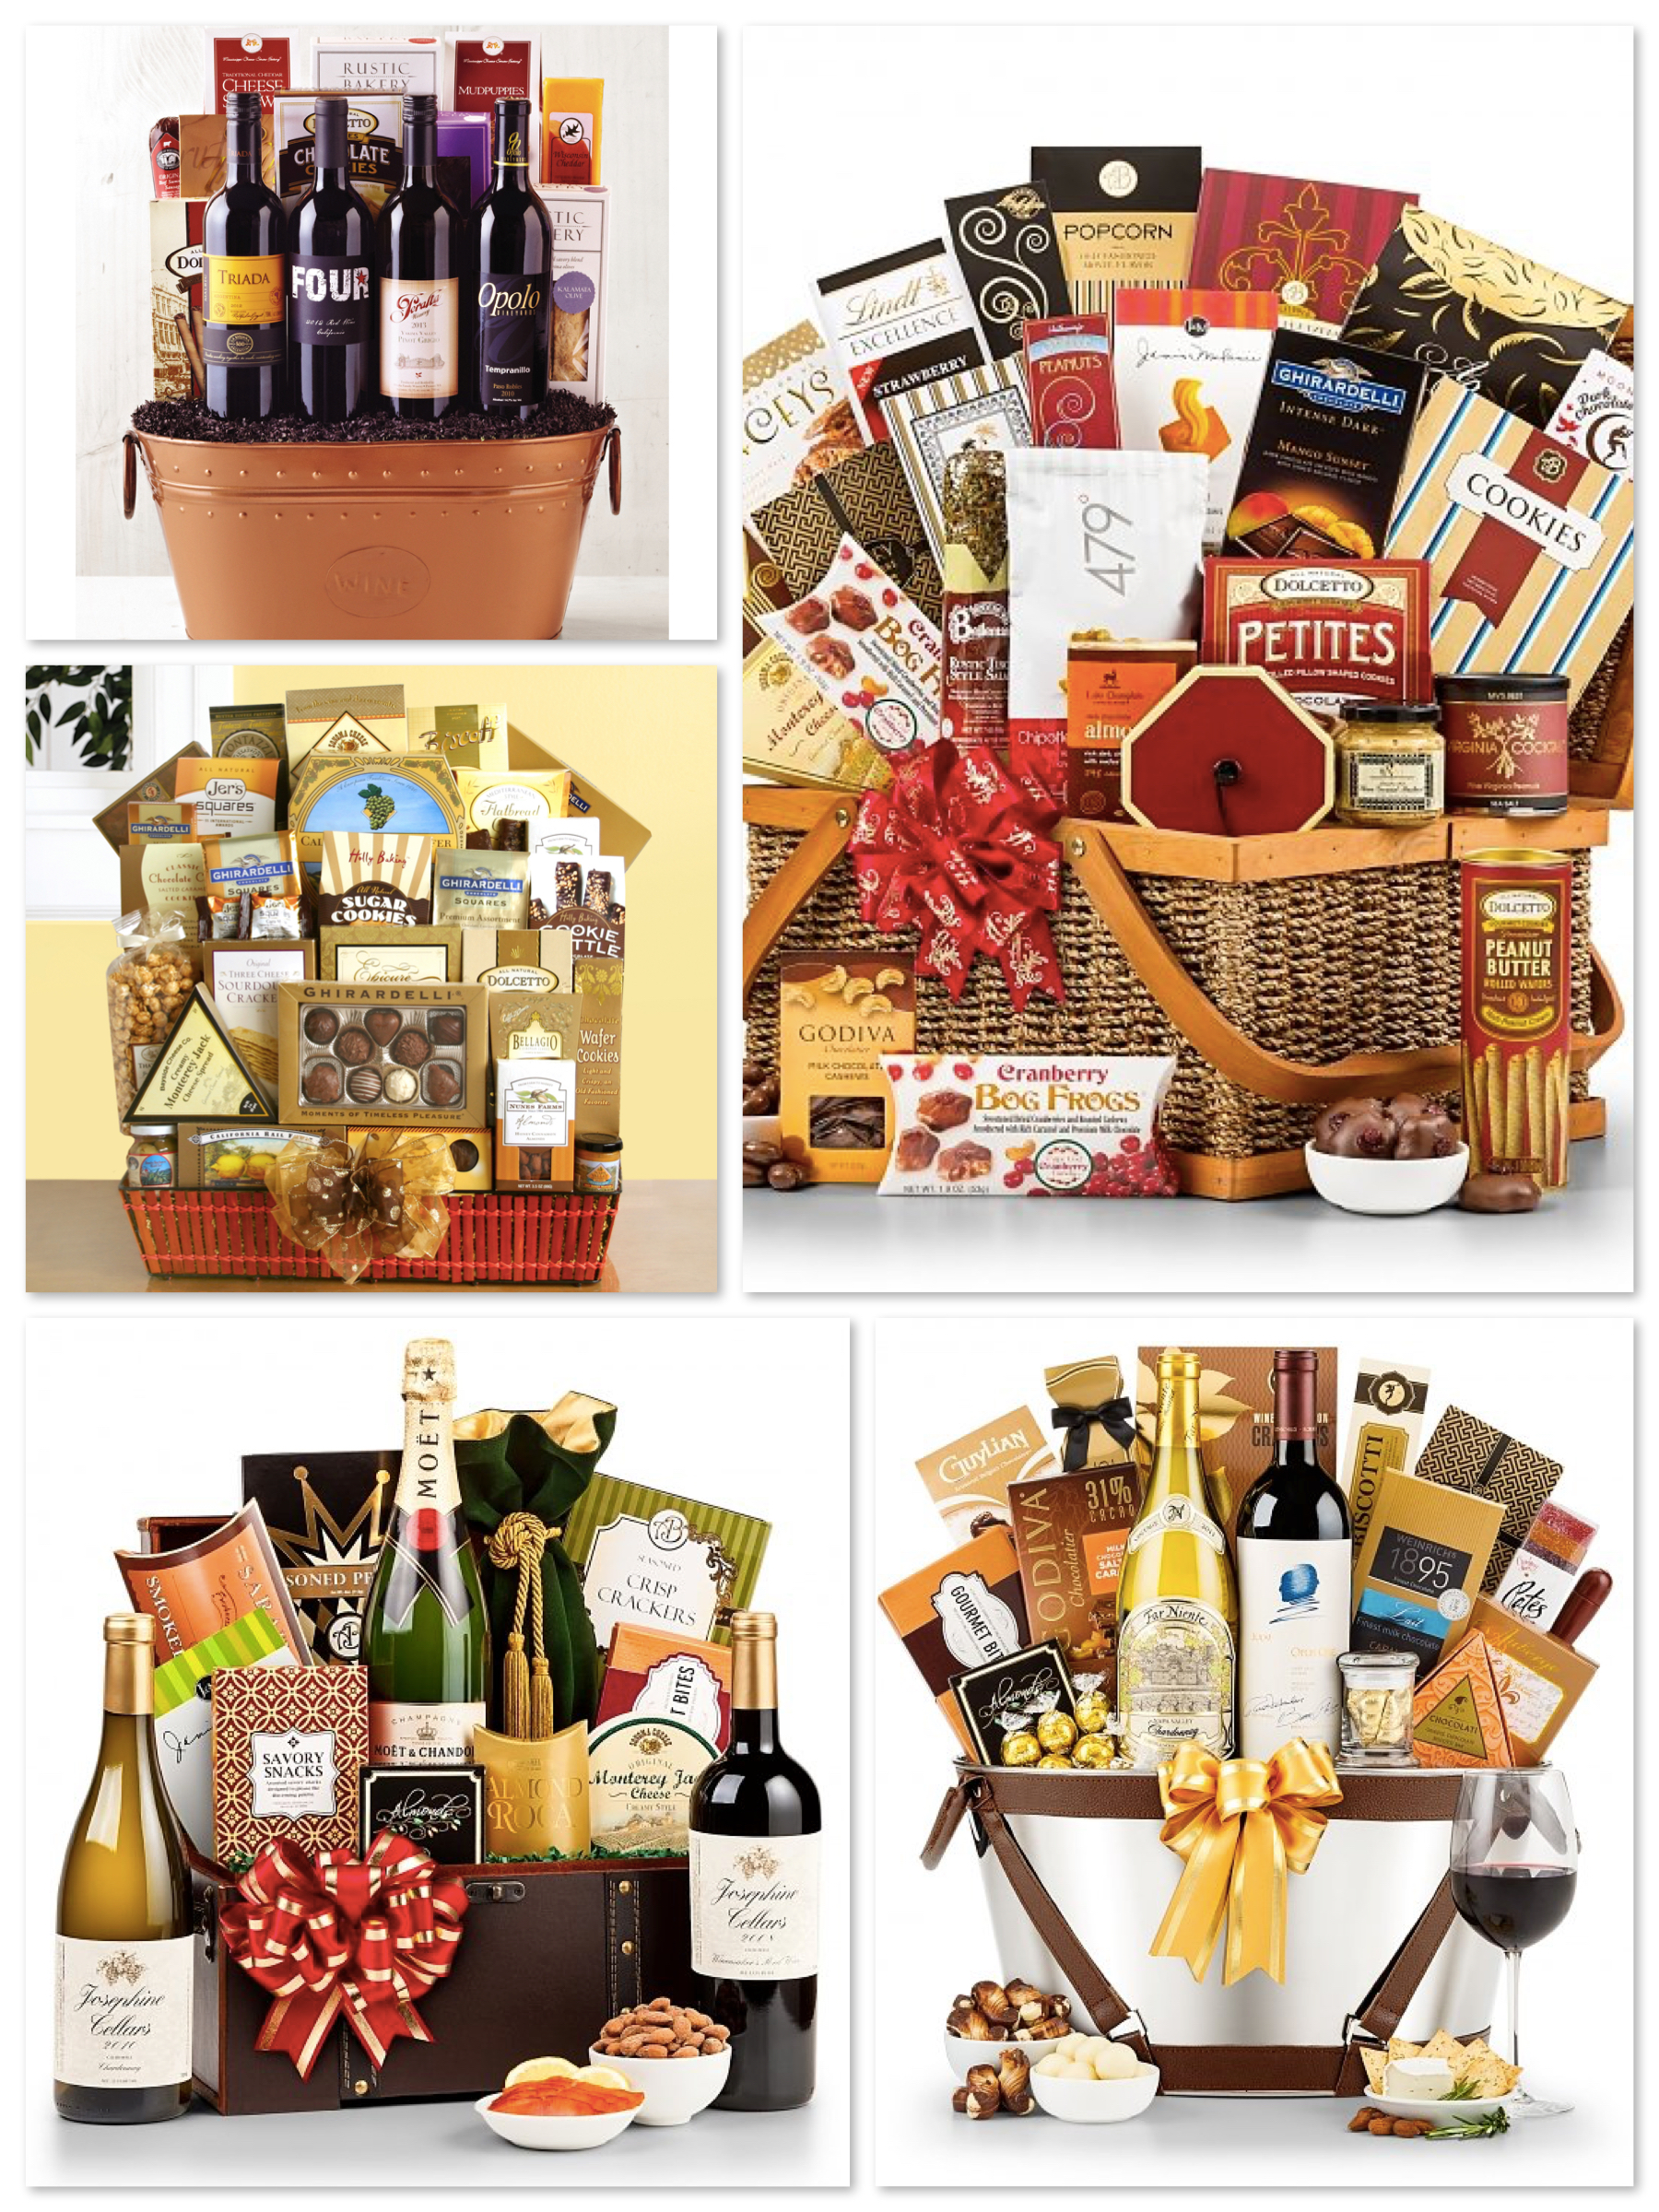 Luxury Wine Baskets, Best Company Holiday Gifts Over $100, Best Luxury Company Holiday Gifts